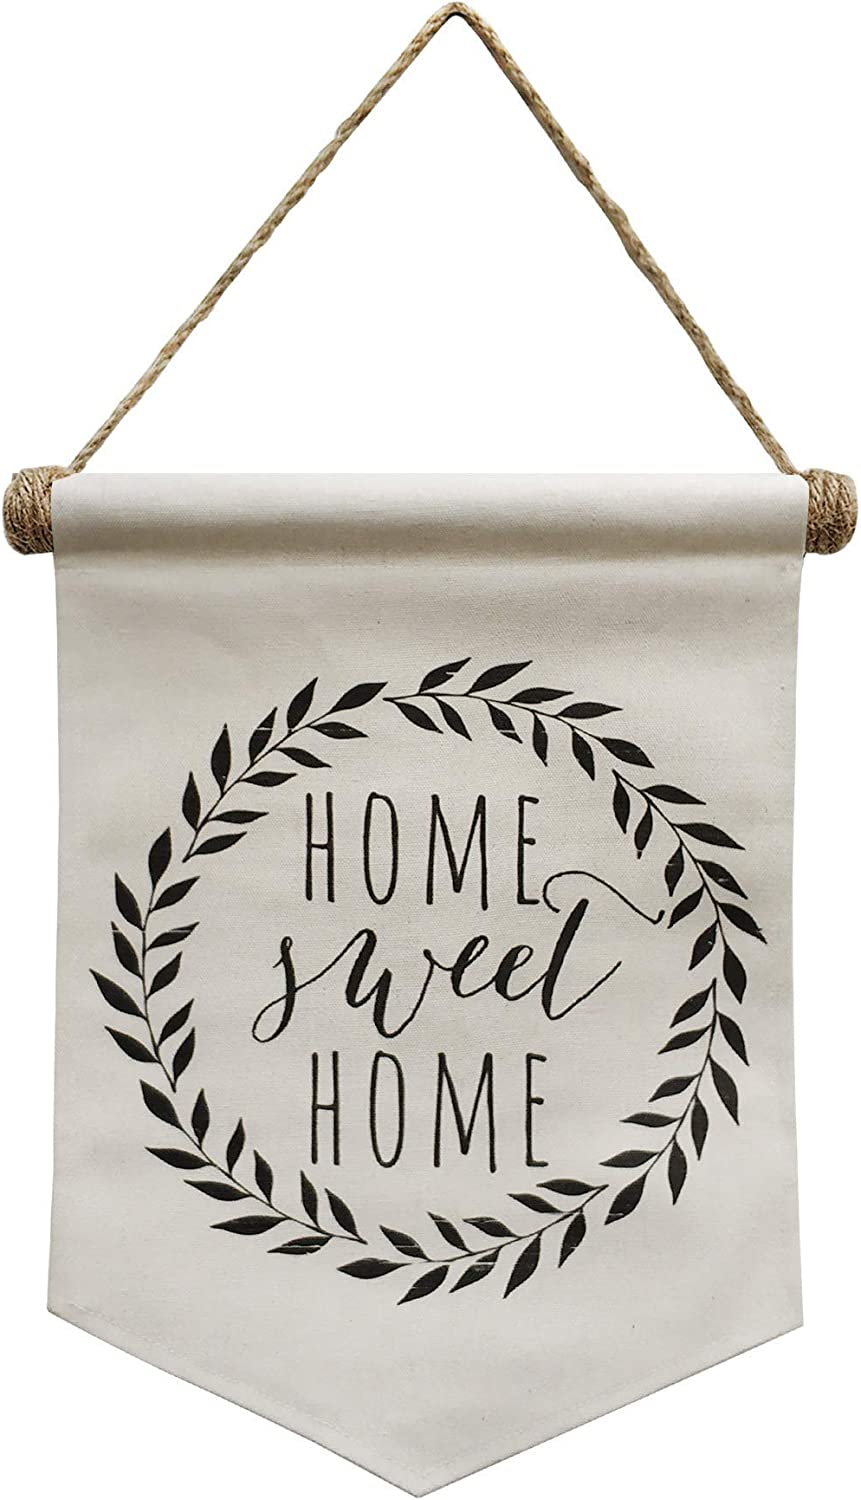 "NITYNP Home Sweet Home Banner Scroll Wall Decor Linen Door Sign with Home Saying 11.41""x14.96"""